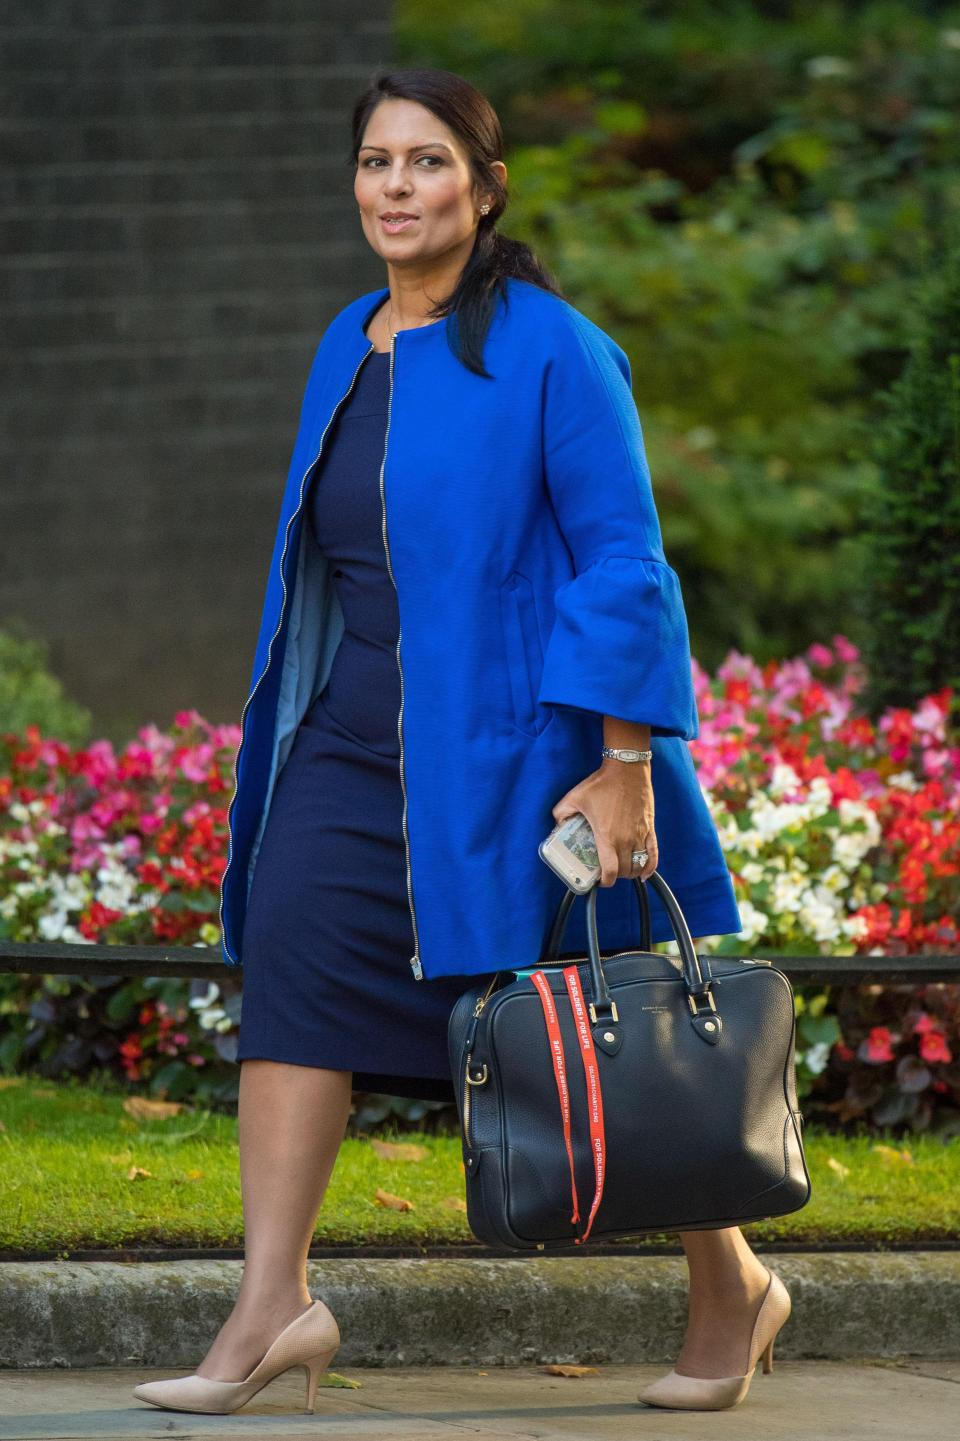 Downing Street urges Priti Patel to come clean about any more secret meetings with foreign politicians